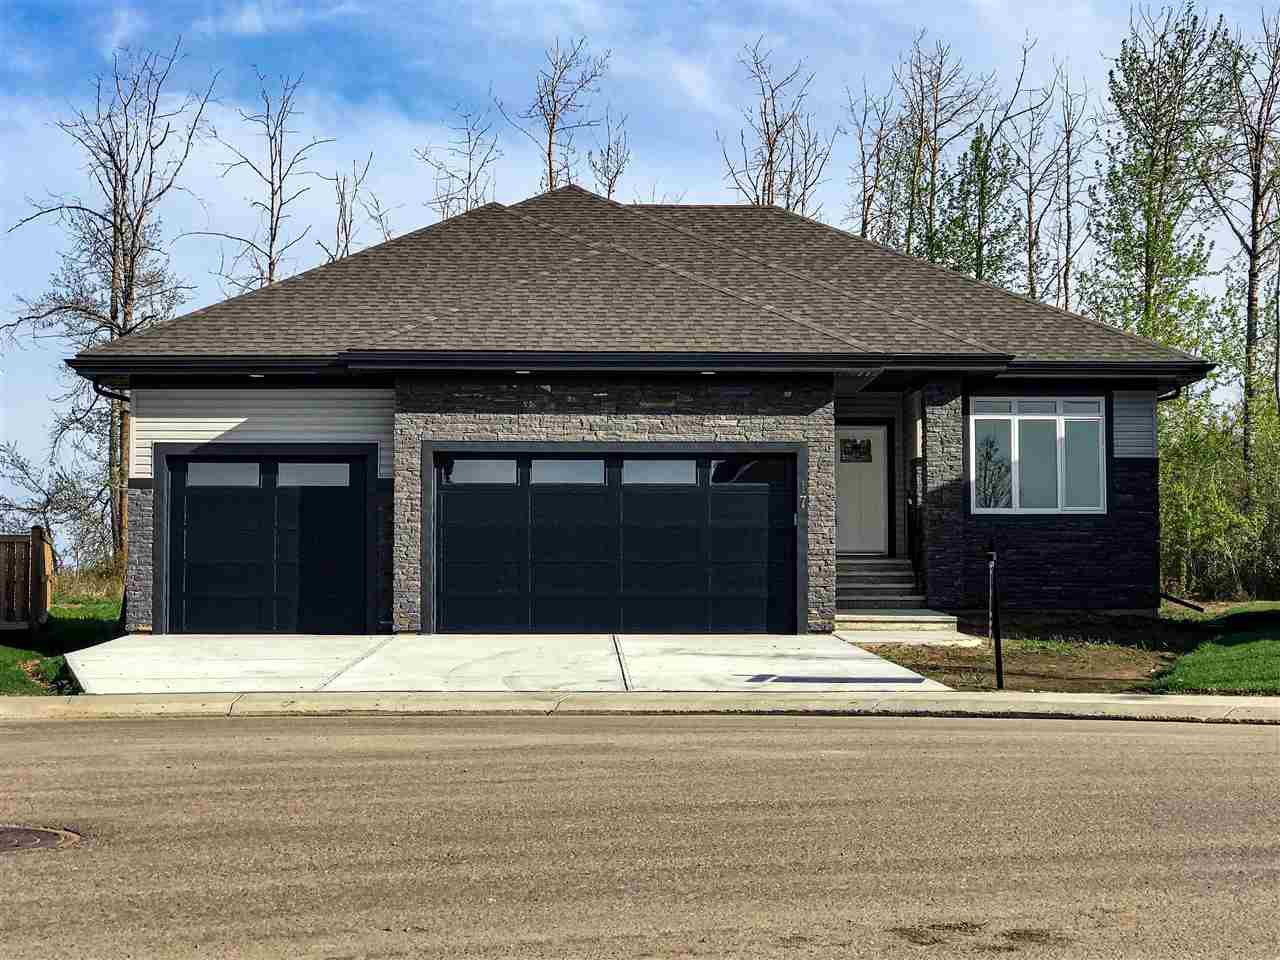 Main Photo: 17 DILLWORTH Crescent: Spruce Grove House for sale : MLS®# E4193523